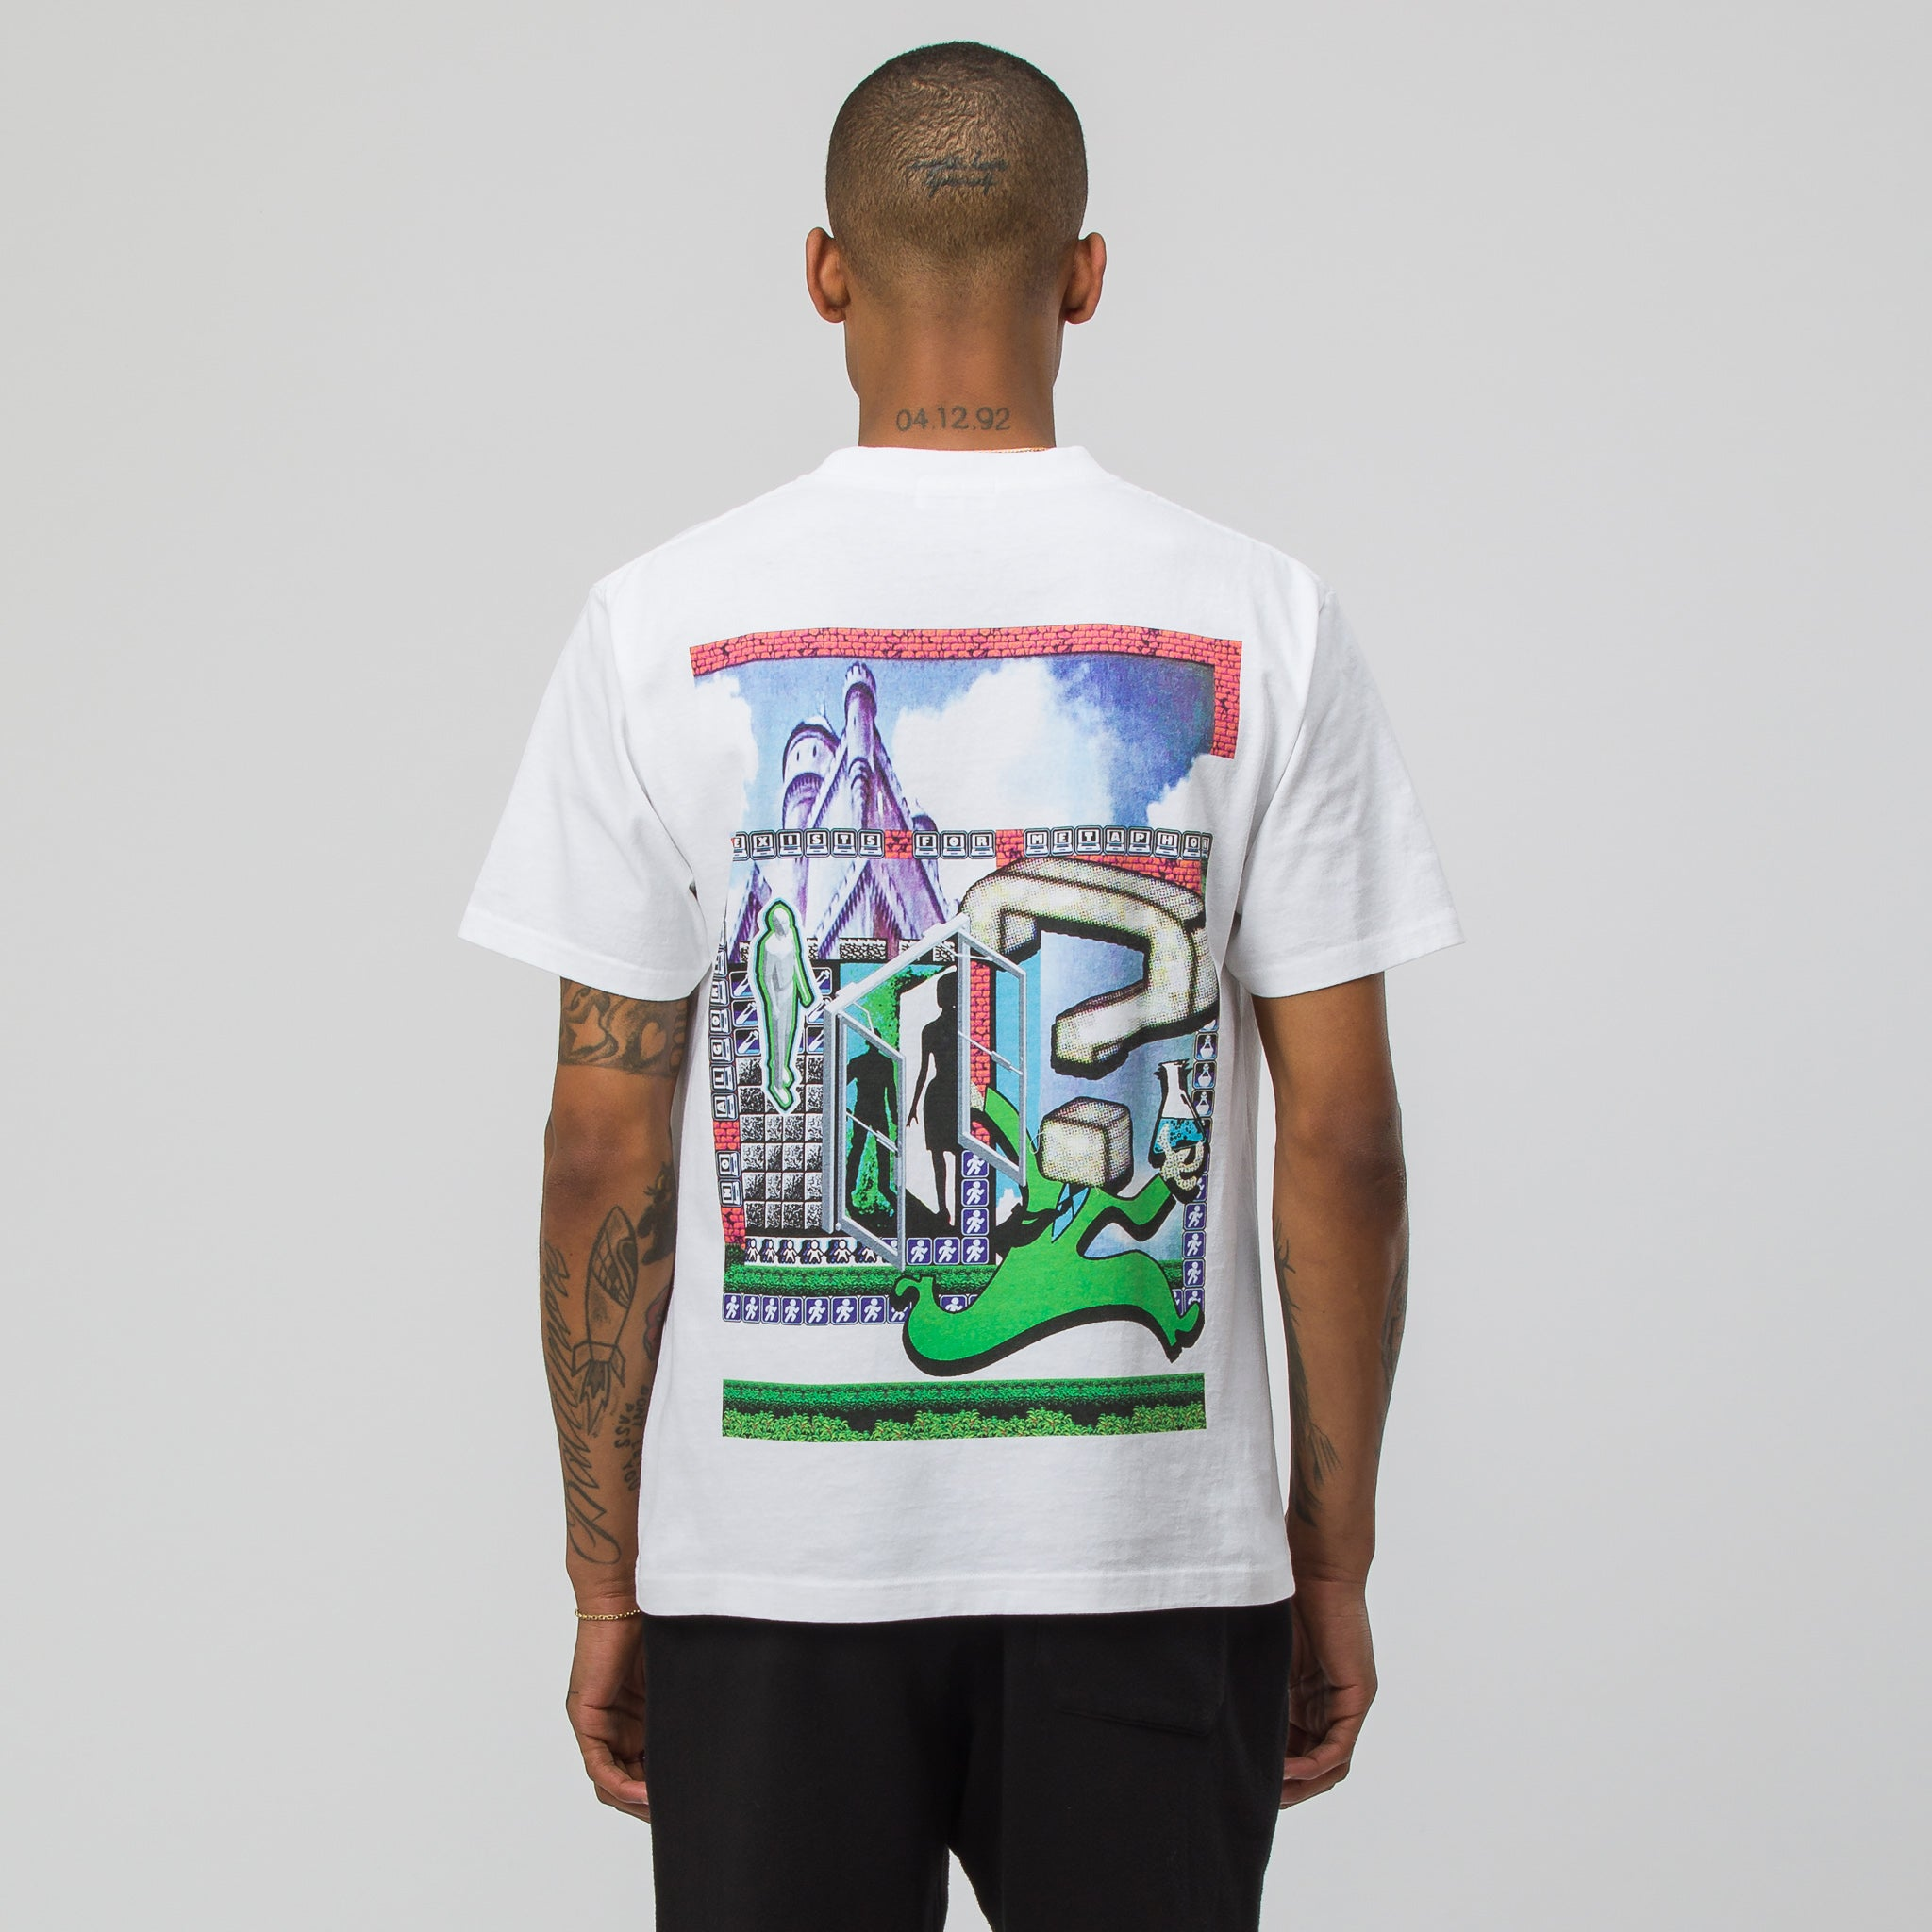 MD Metaphor T-Shirt in White